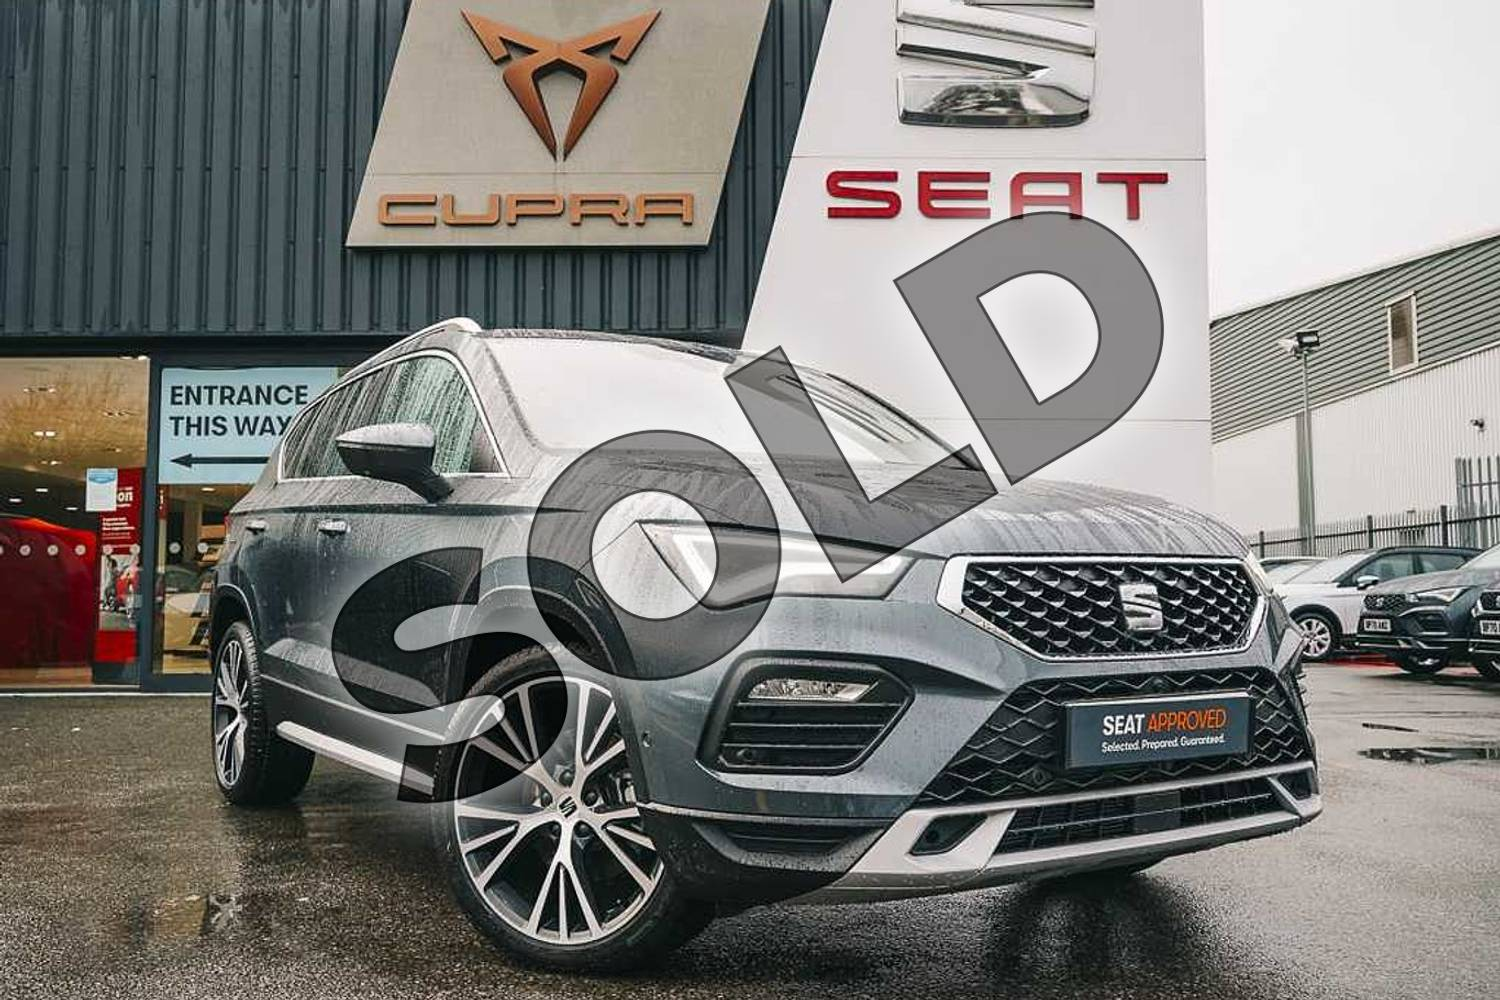 2021 SEAT Ateca 1.5 TSI Xperience Lux in Grey at Listers SEAT Coventry